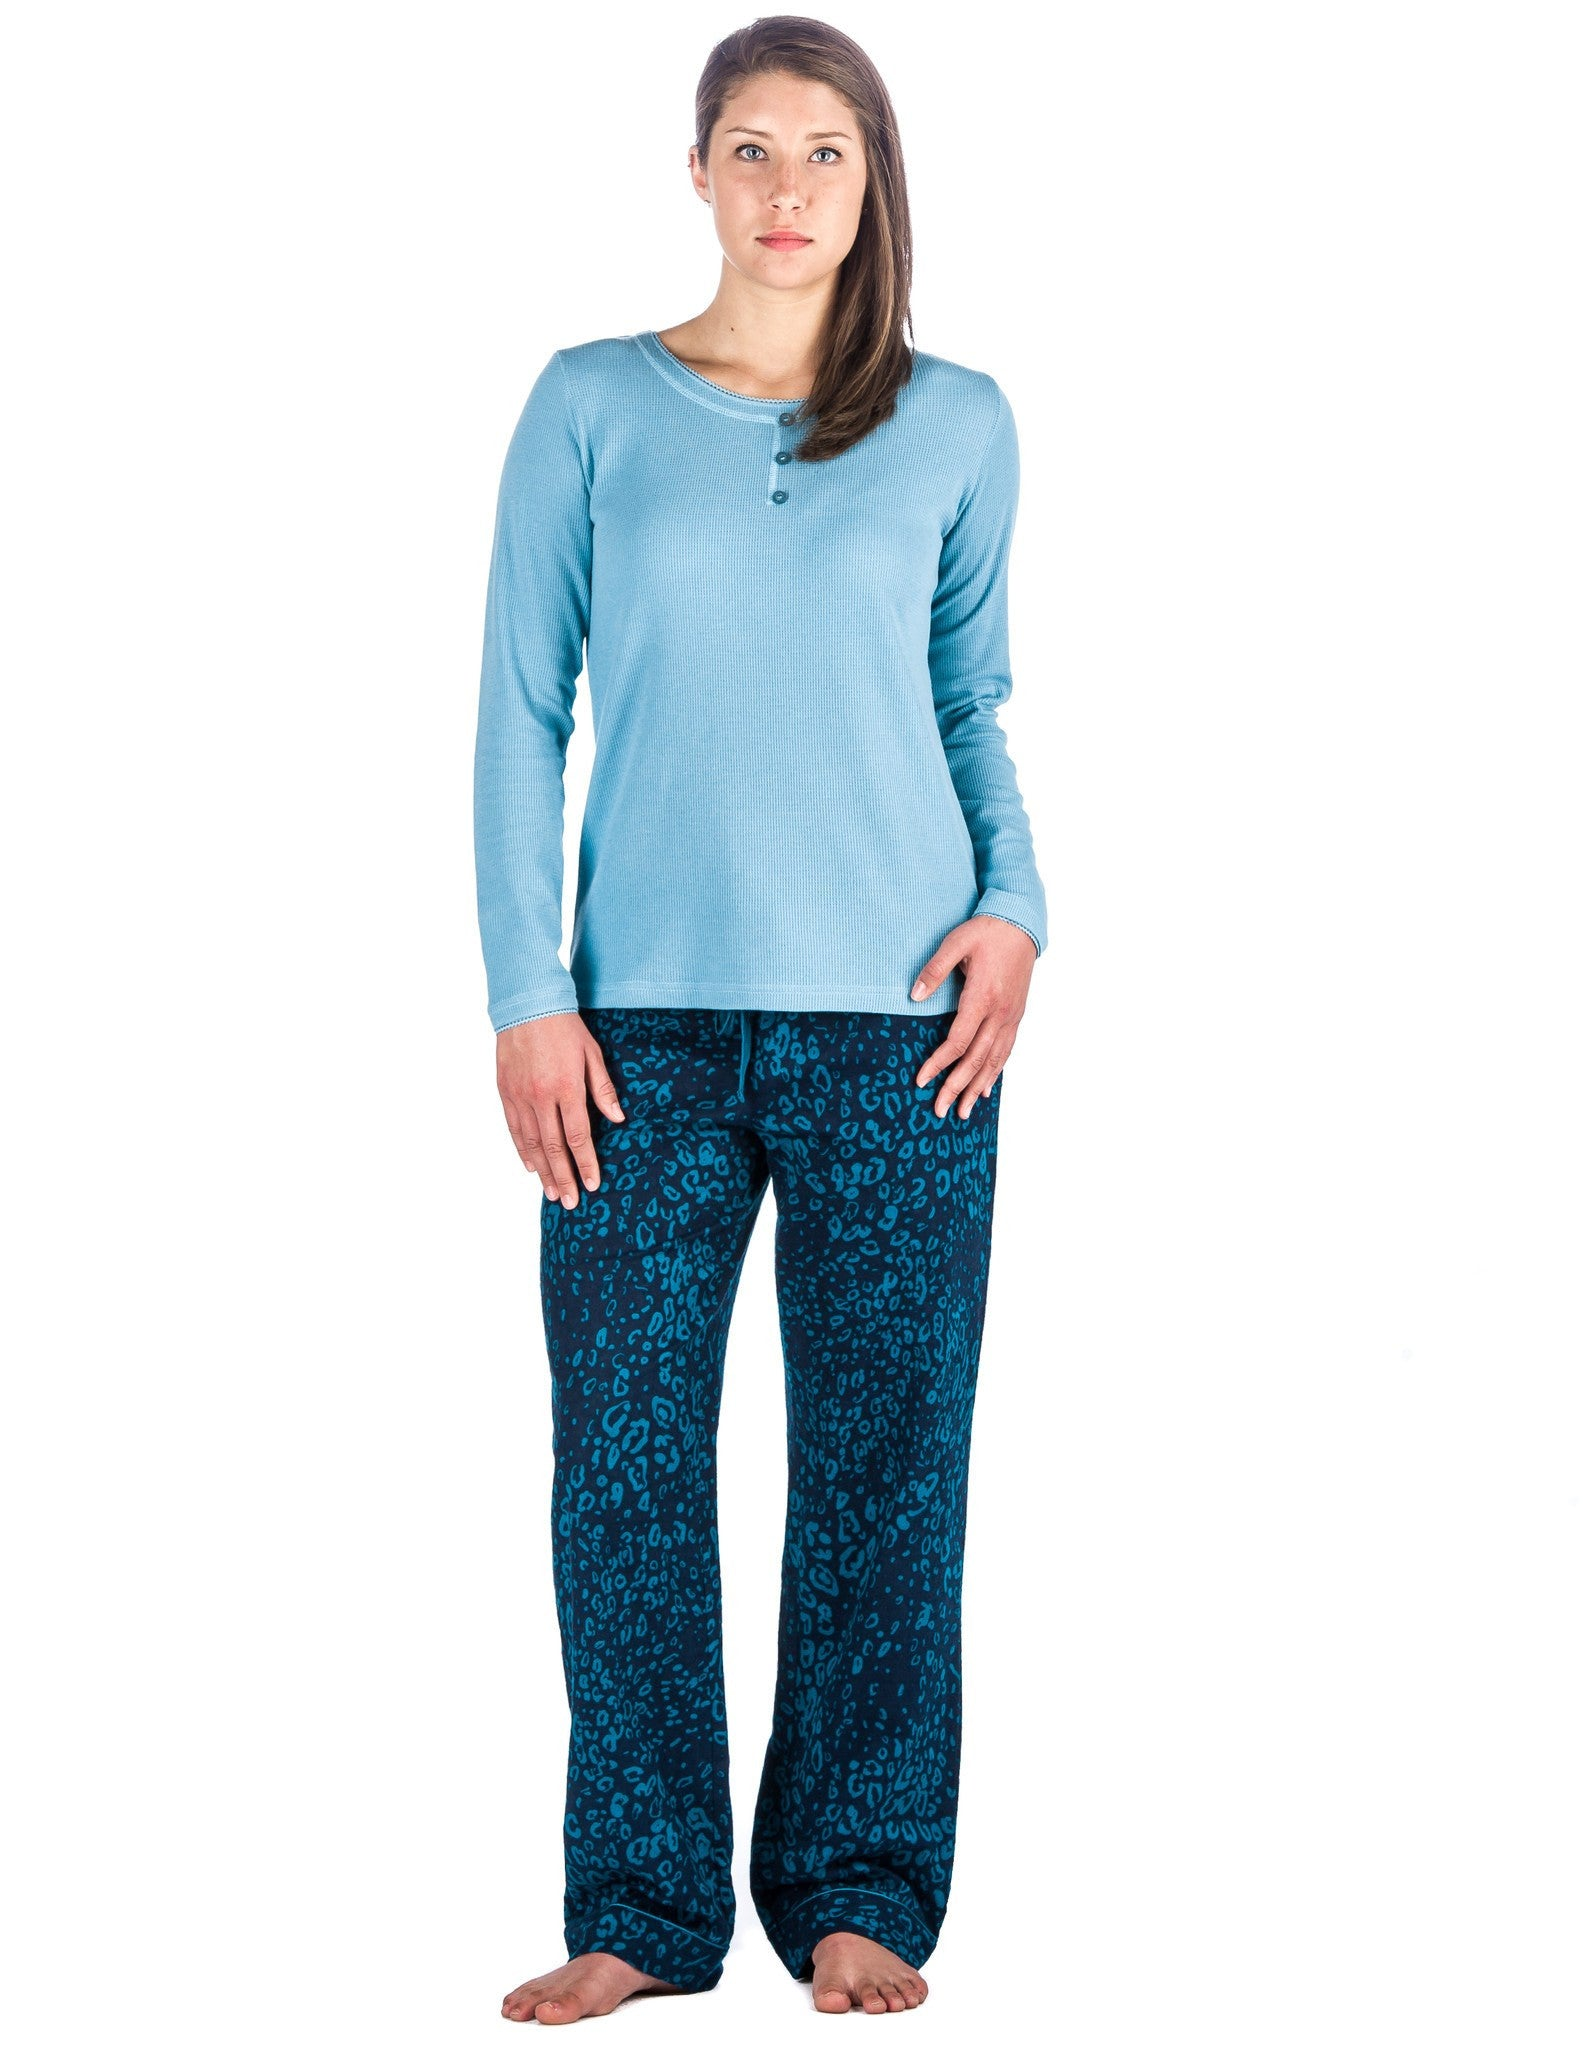 Relaxed Fit Women's Cotton Flannel Lounge Set with Crew Neck Top